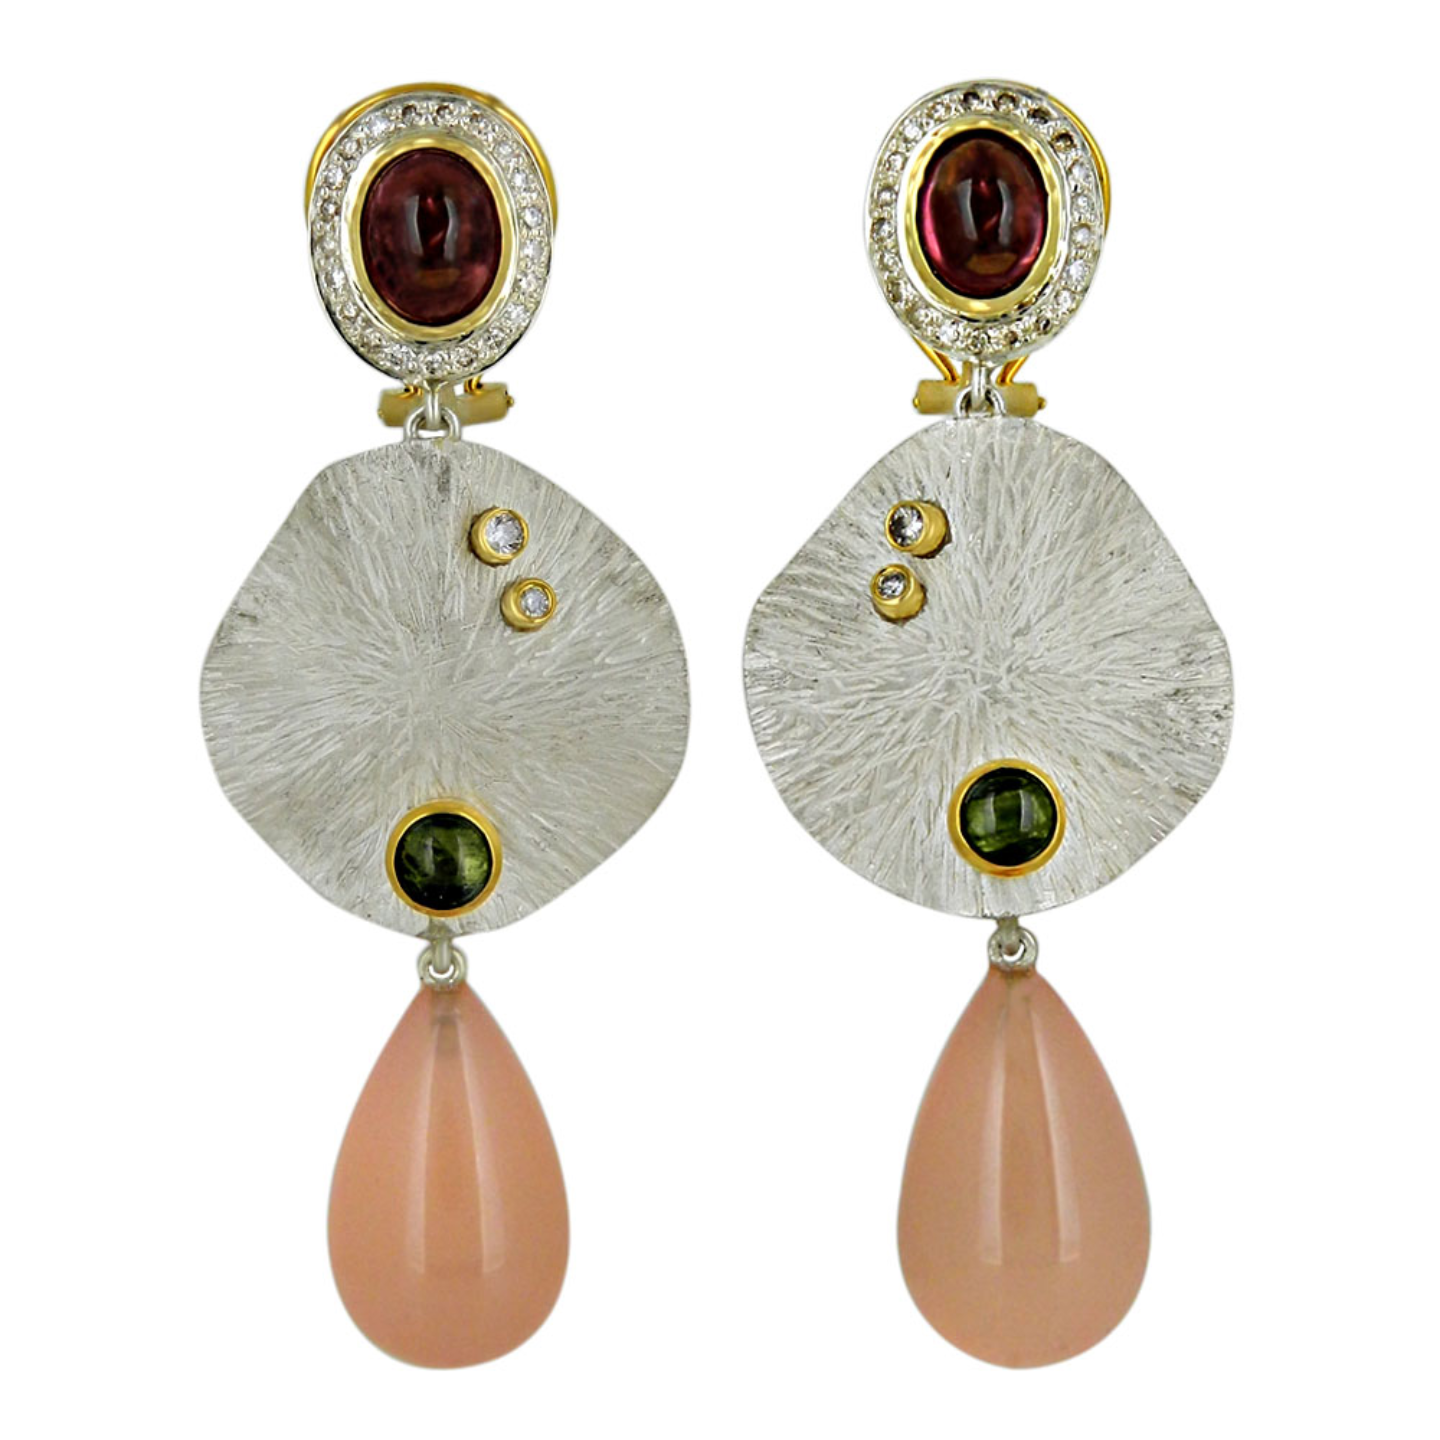 An impressive mix metal textured earrings with gemstones.